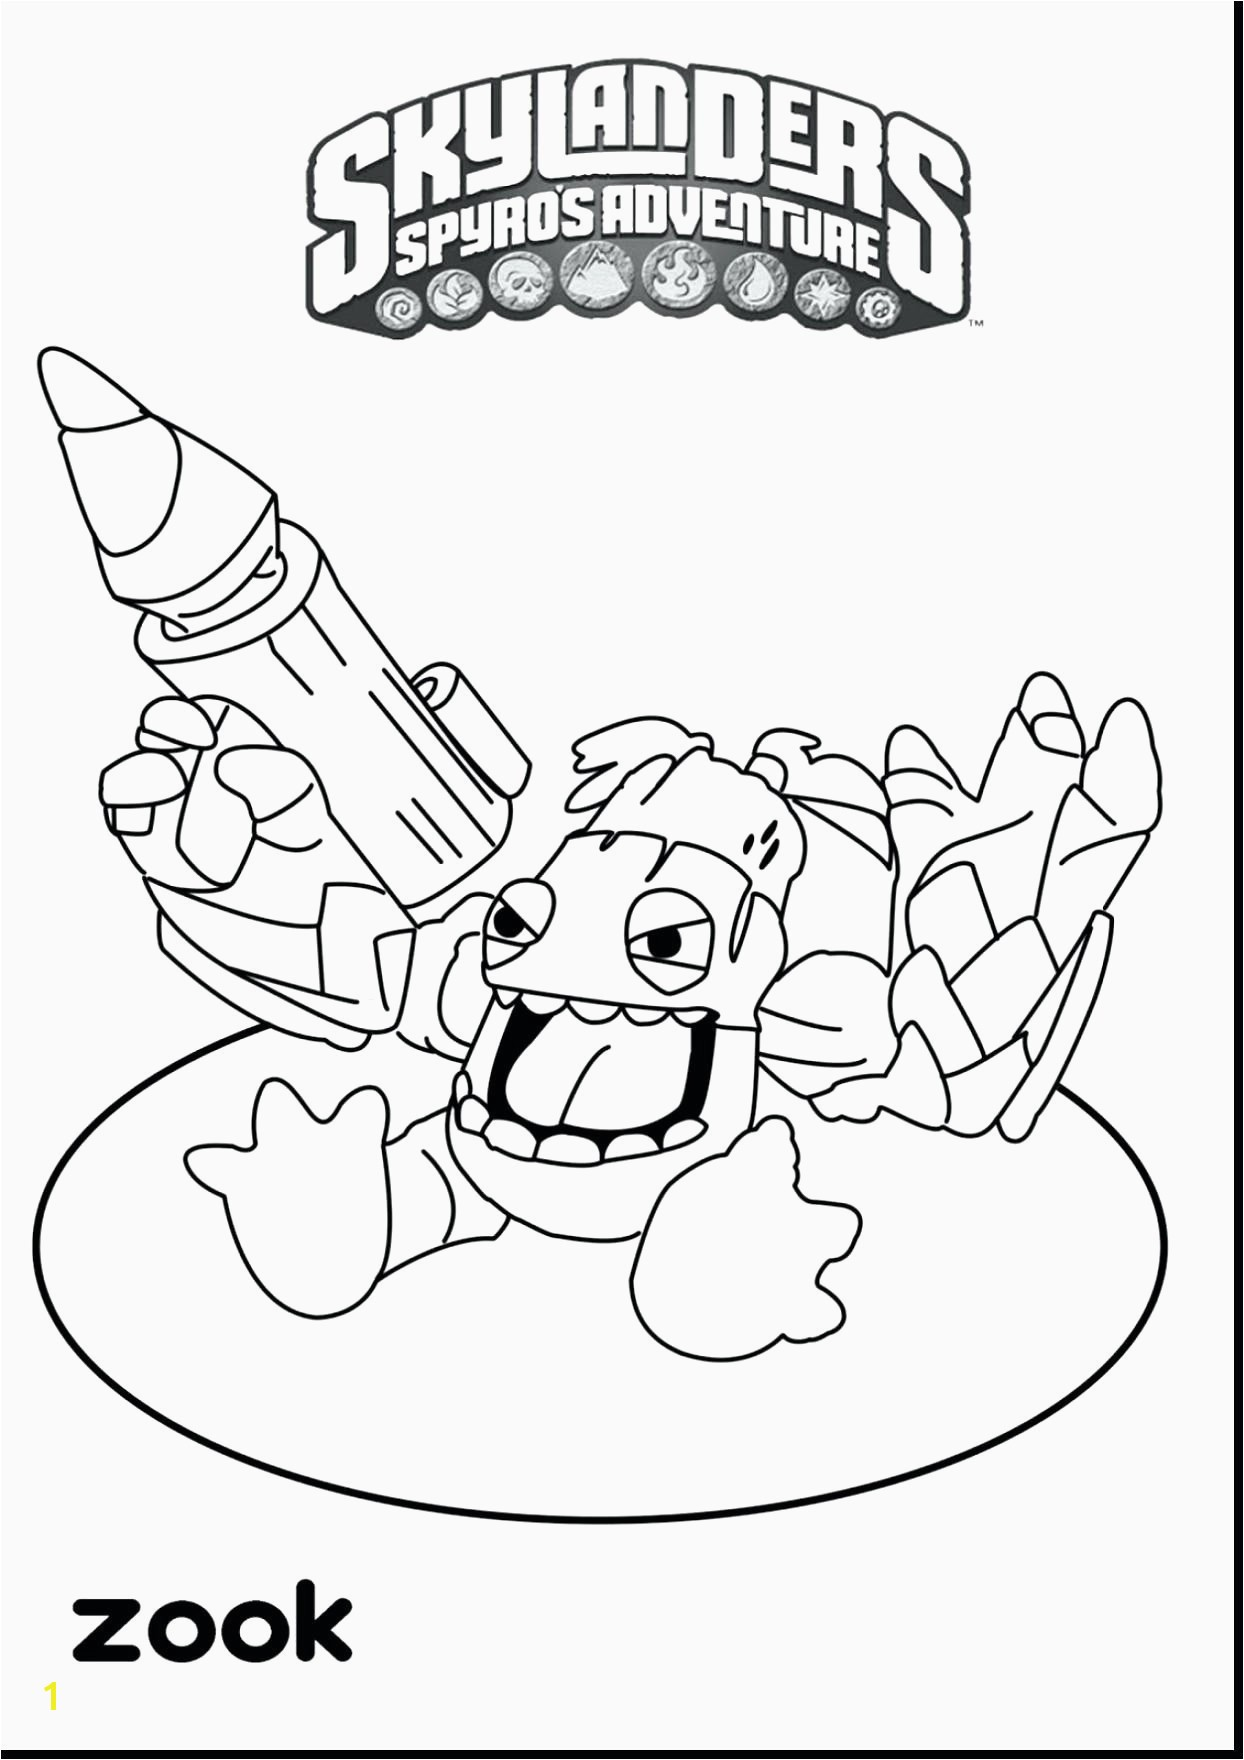 3 Wise Men Coloring Page 15 Inspirational 3 Wise Men Coloring Page Gallery